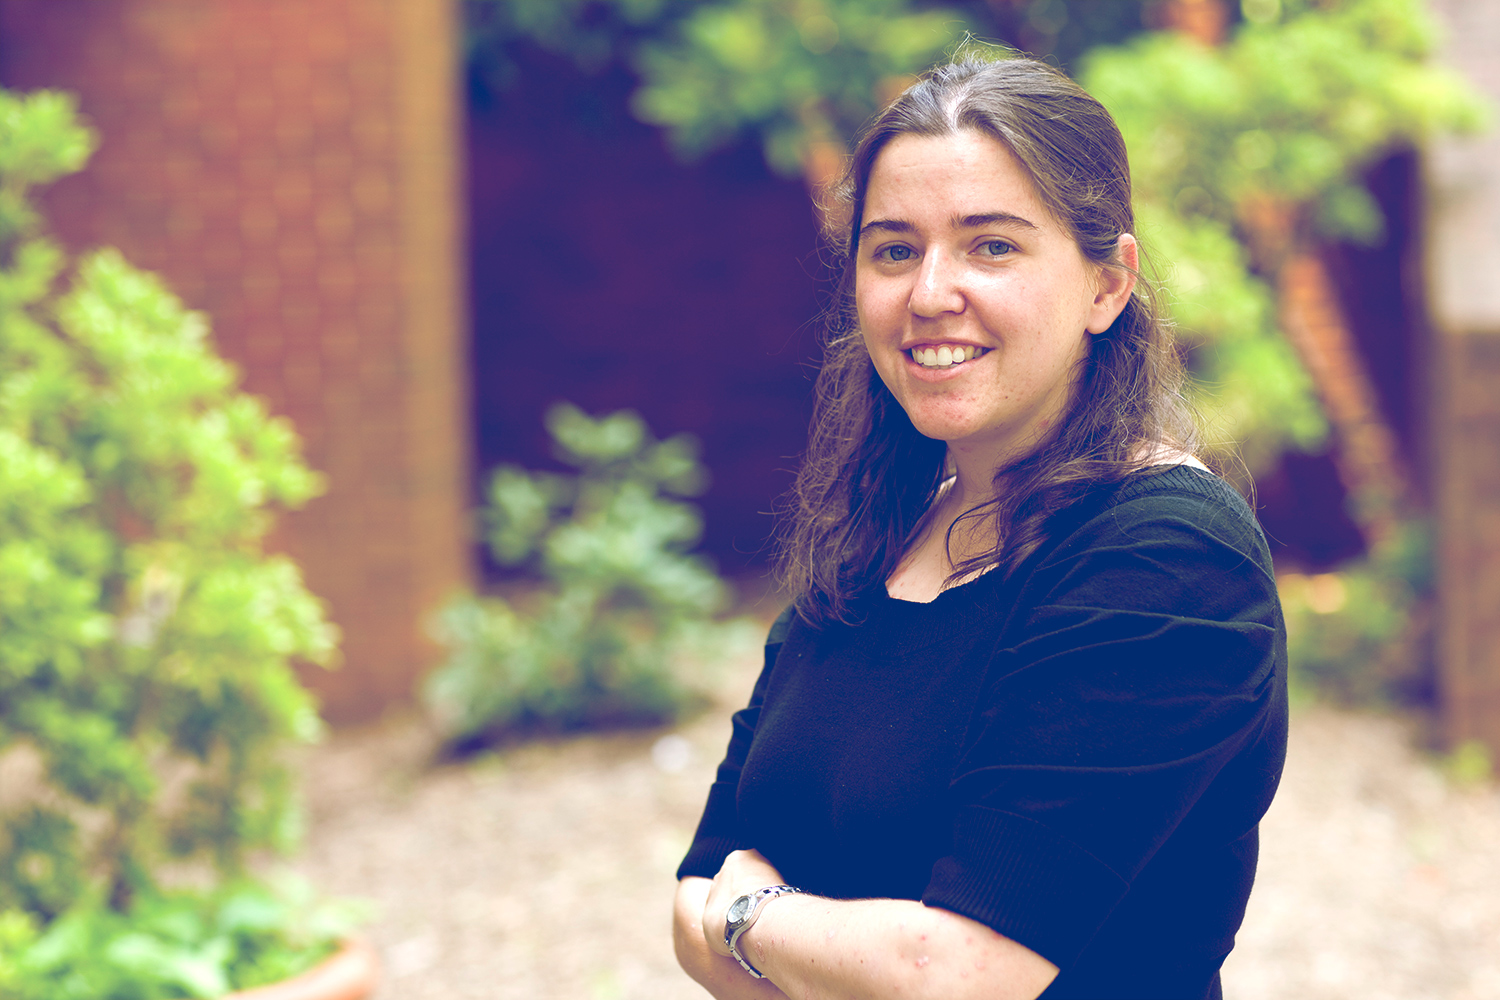 Professor Daphna Bassok studied economics and education policy at Stanford University before joining UVA's faculty in 2009. Since then, her work has been aimed at understanding how early childhood opportunities affect low-income children.